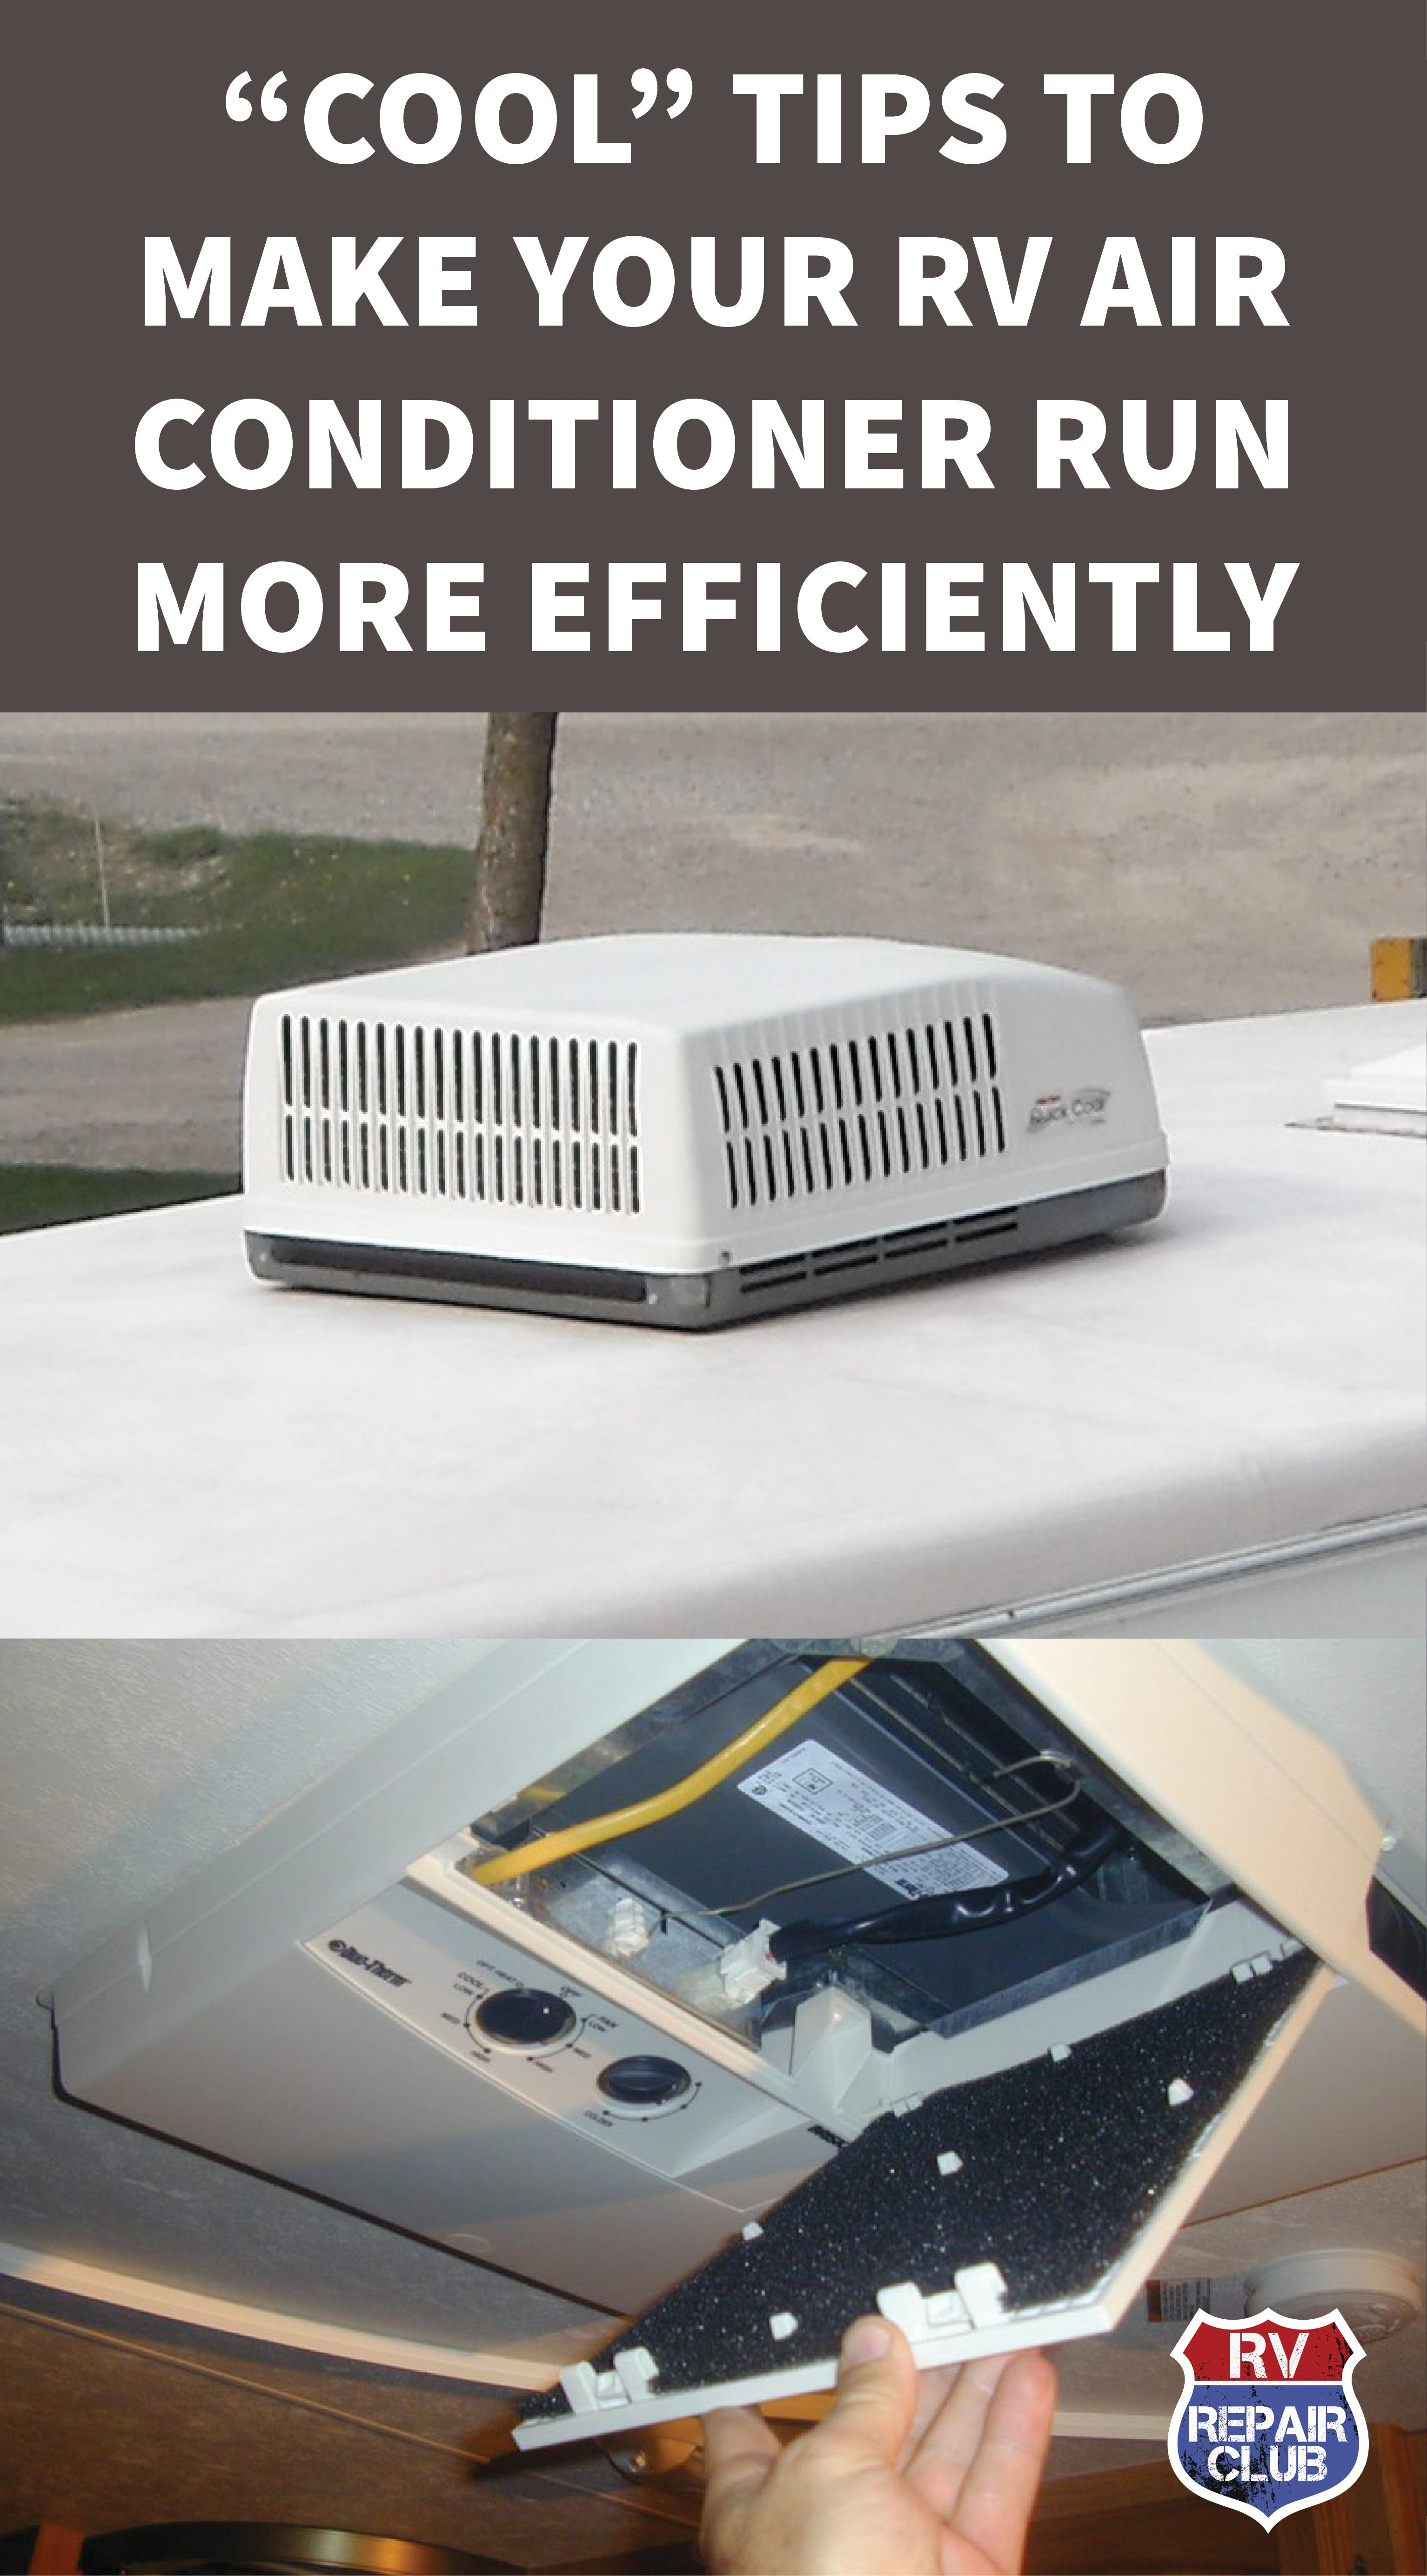 Tips To Make Your Rv Air Conditioner Run More Efficiently Rvrc Rv Air Conditioner Camper Air Conditioner Travel Trailer Camping